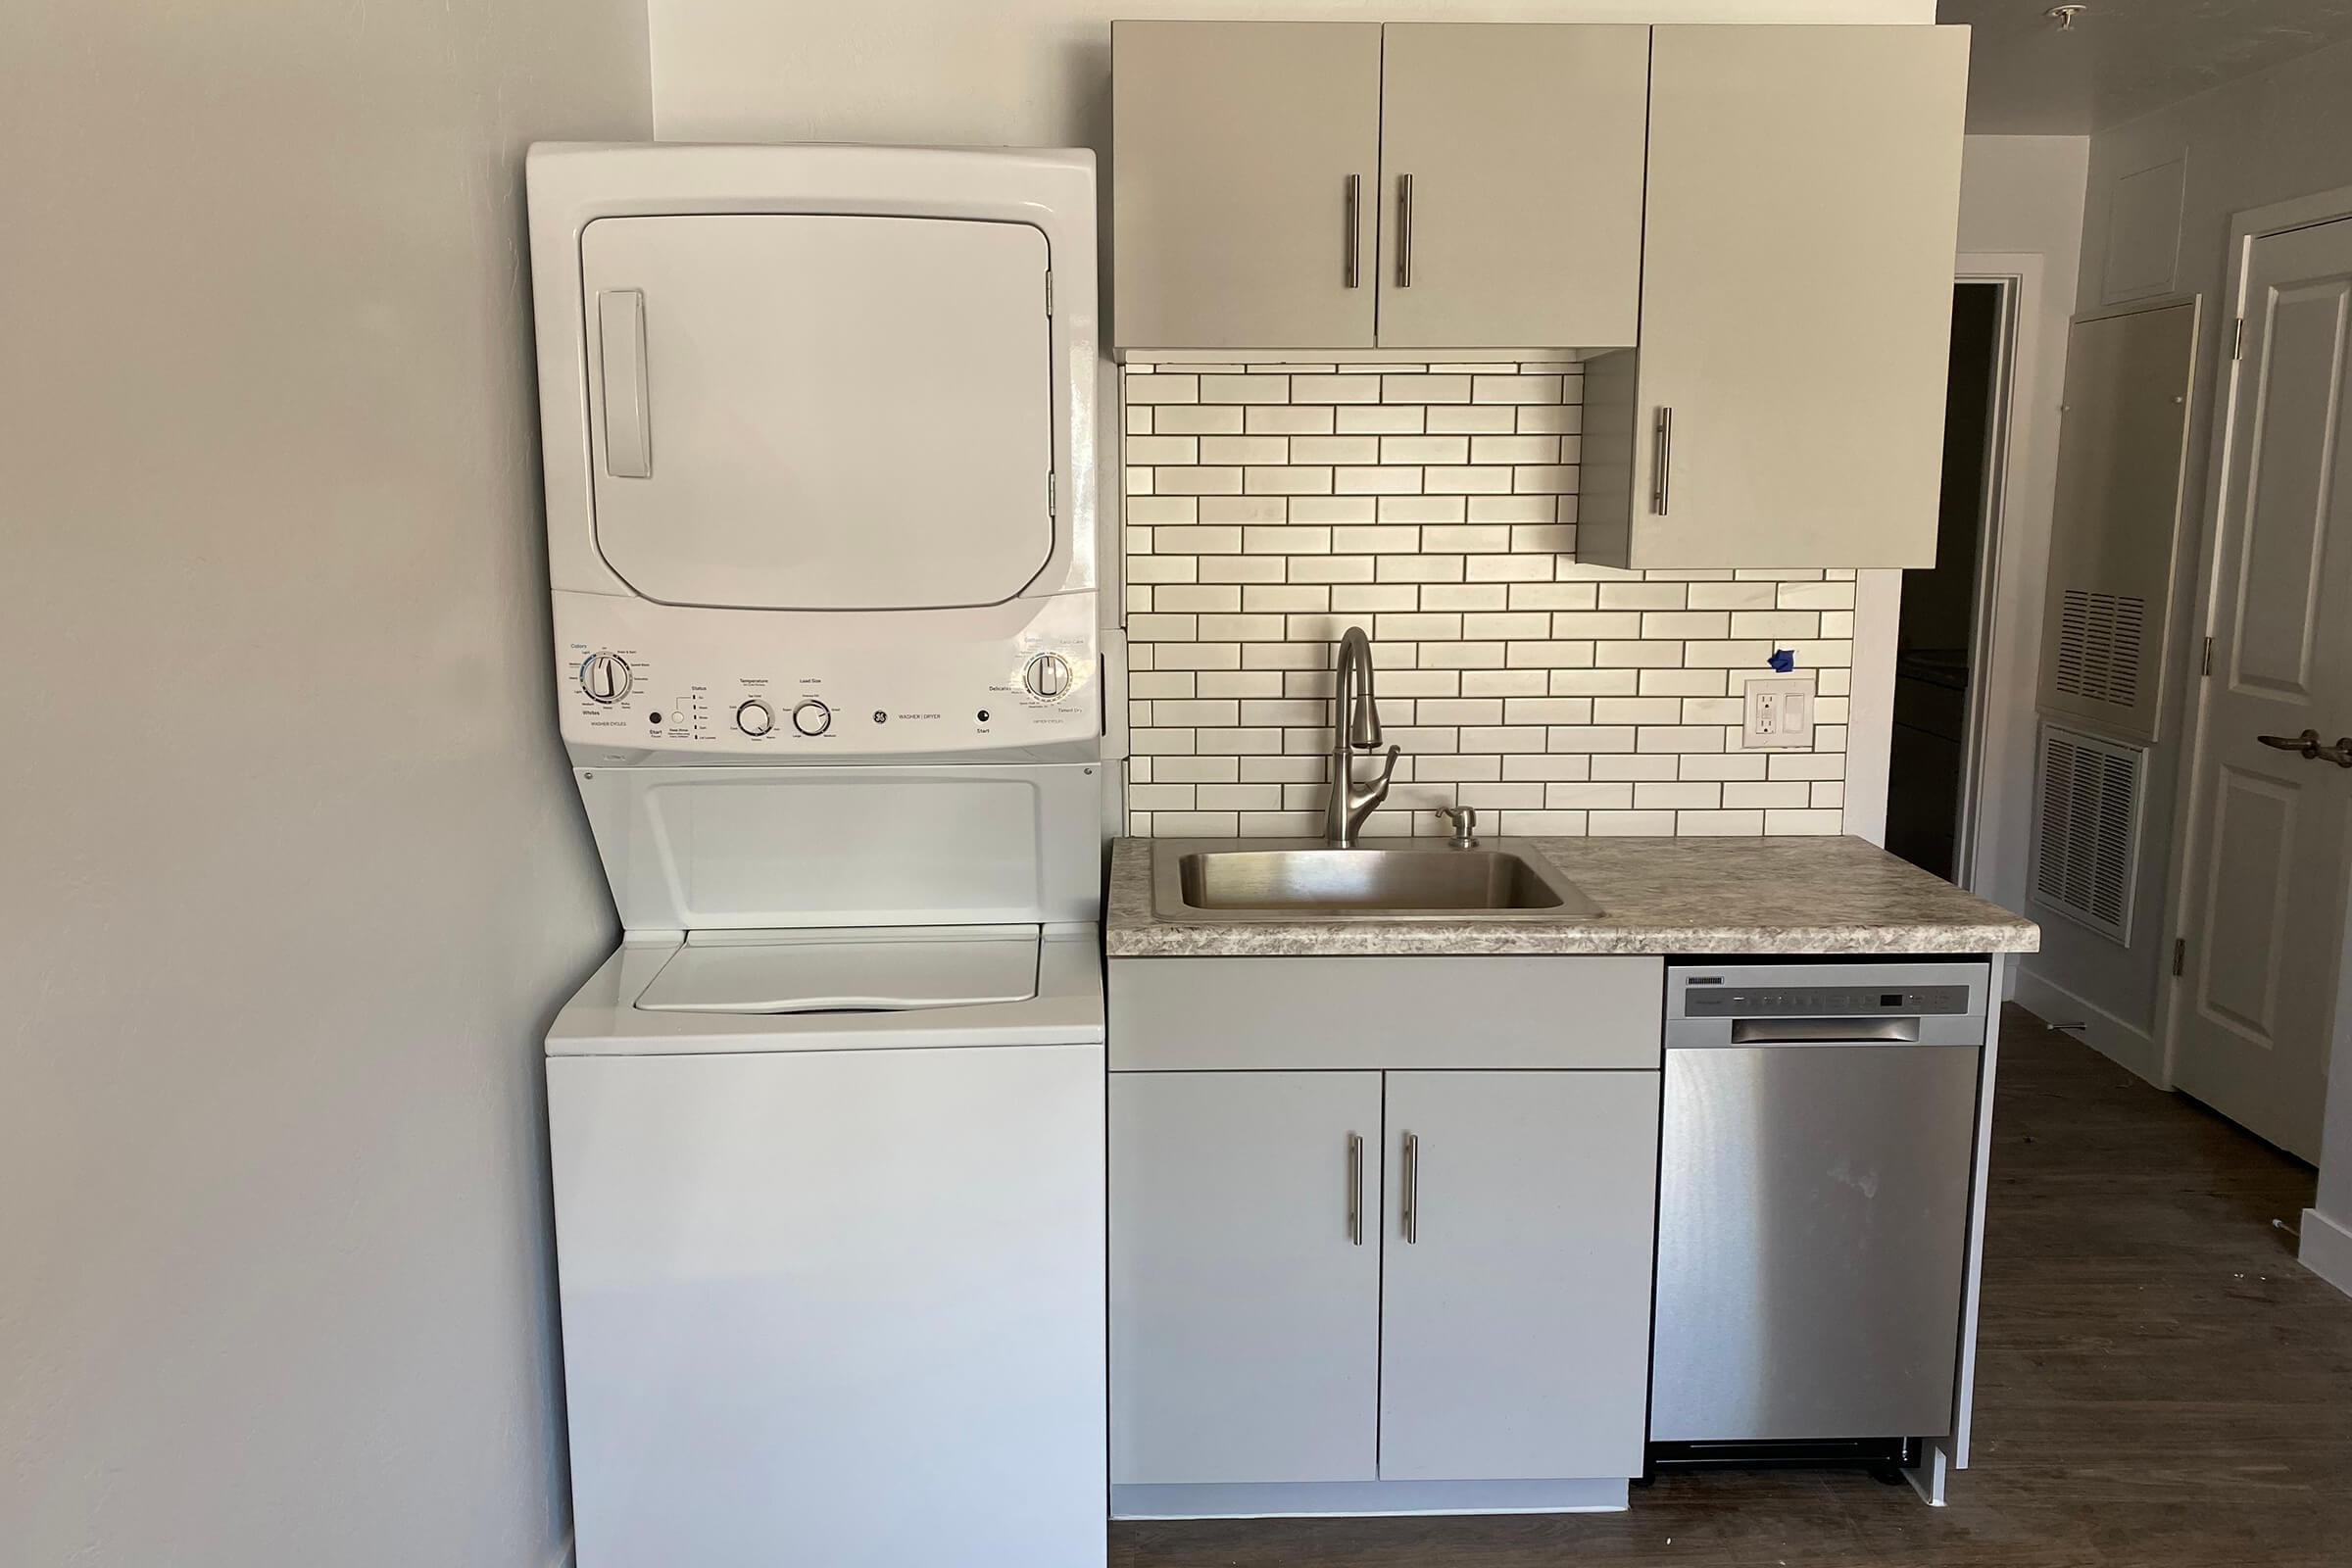 a stove top oven sitting inside of a refrigerator